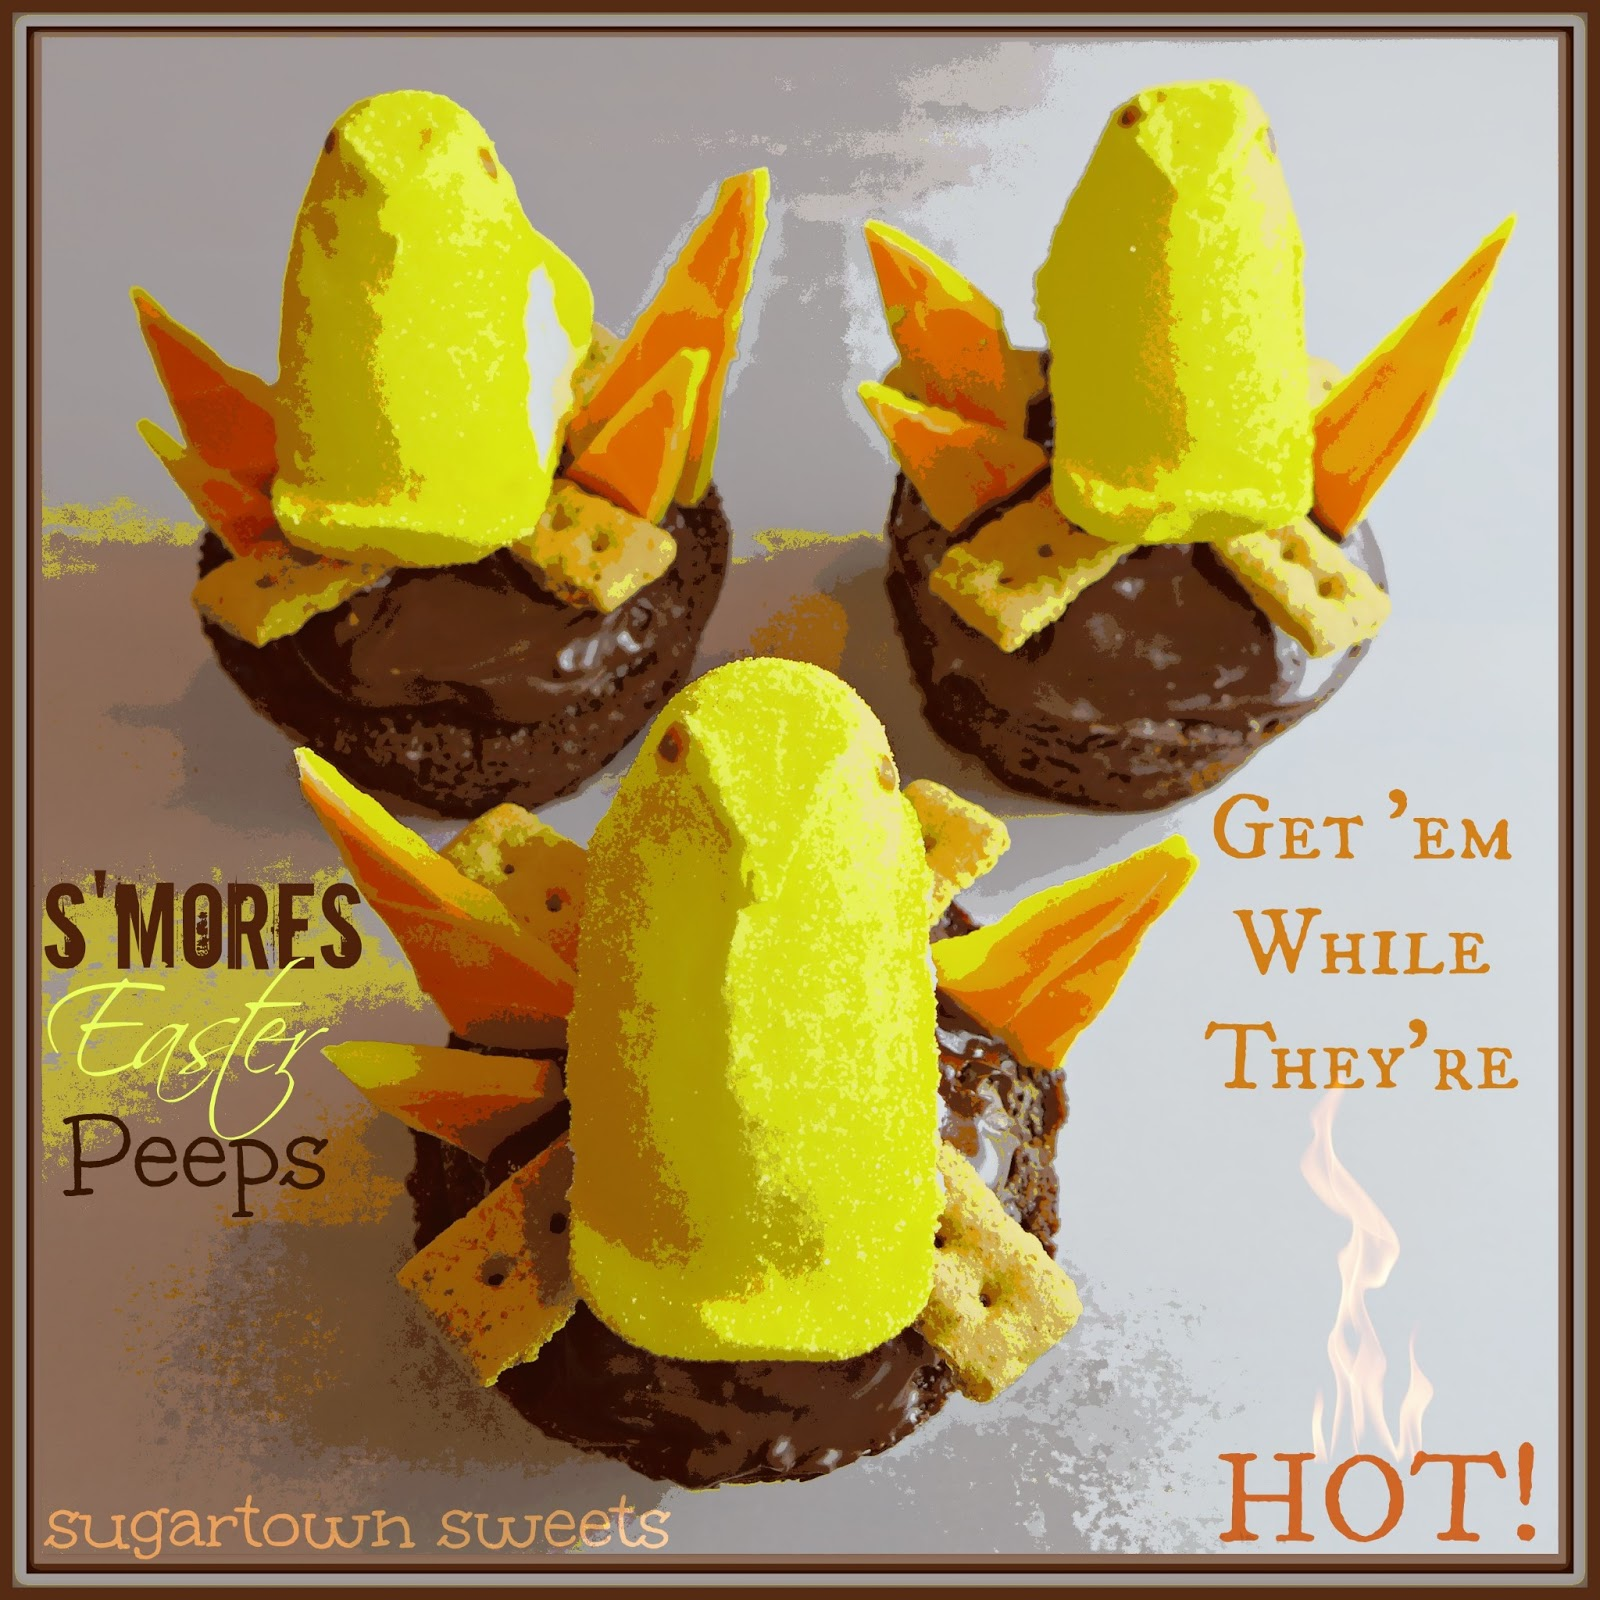 Sugartown Sweets: S'mores Easter Peeps!